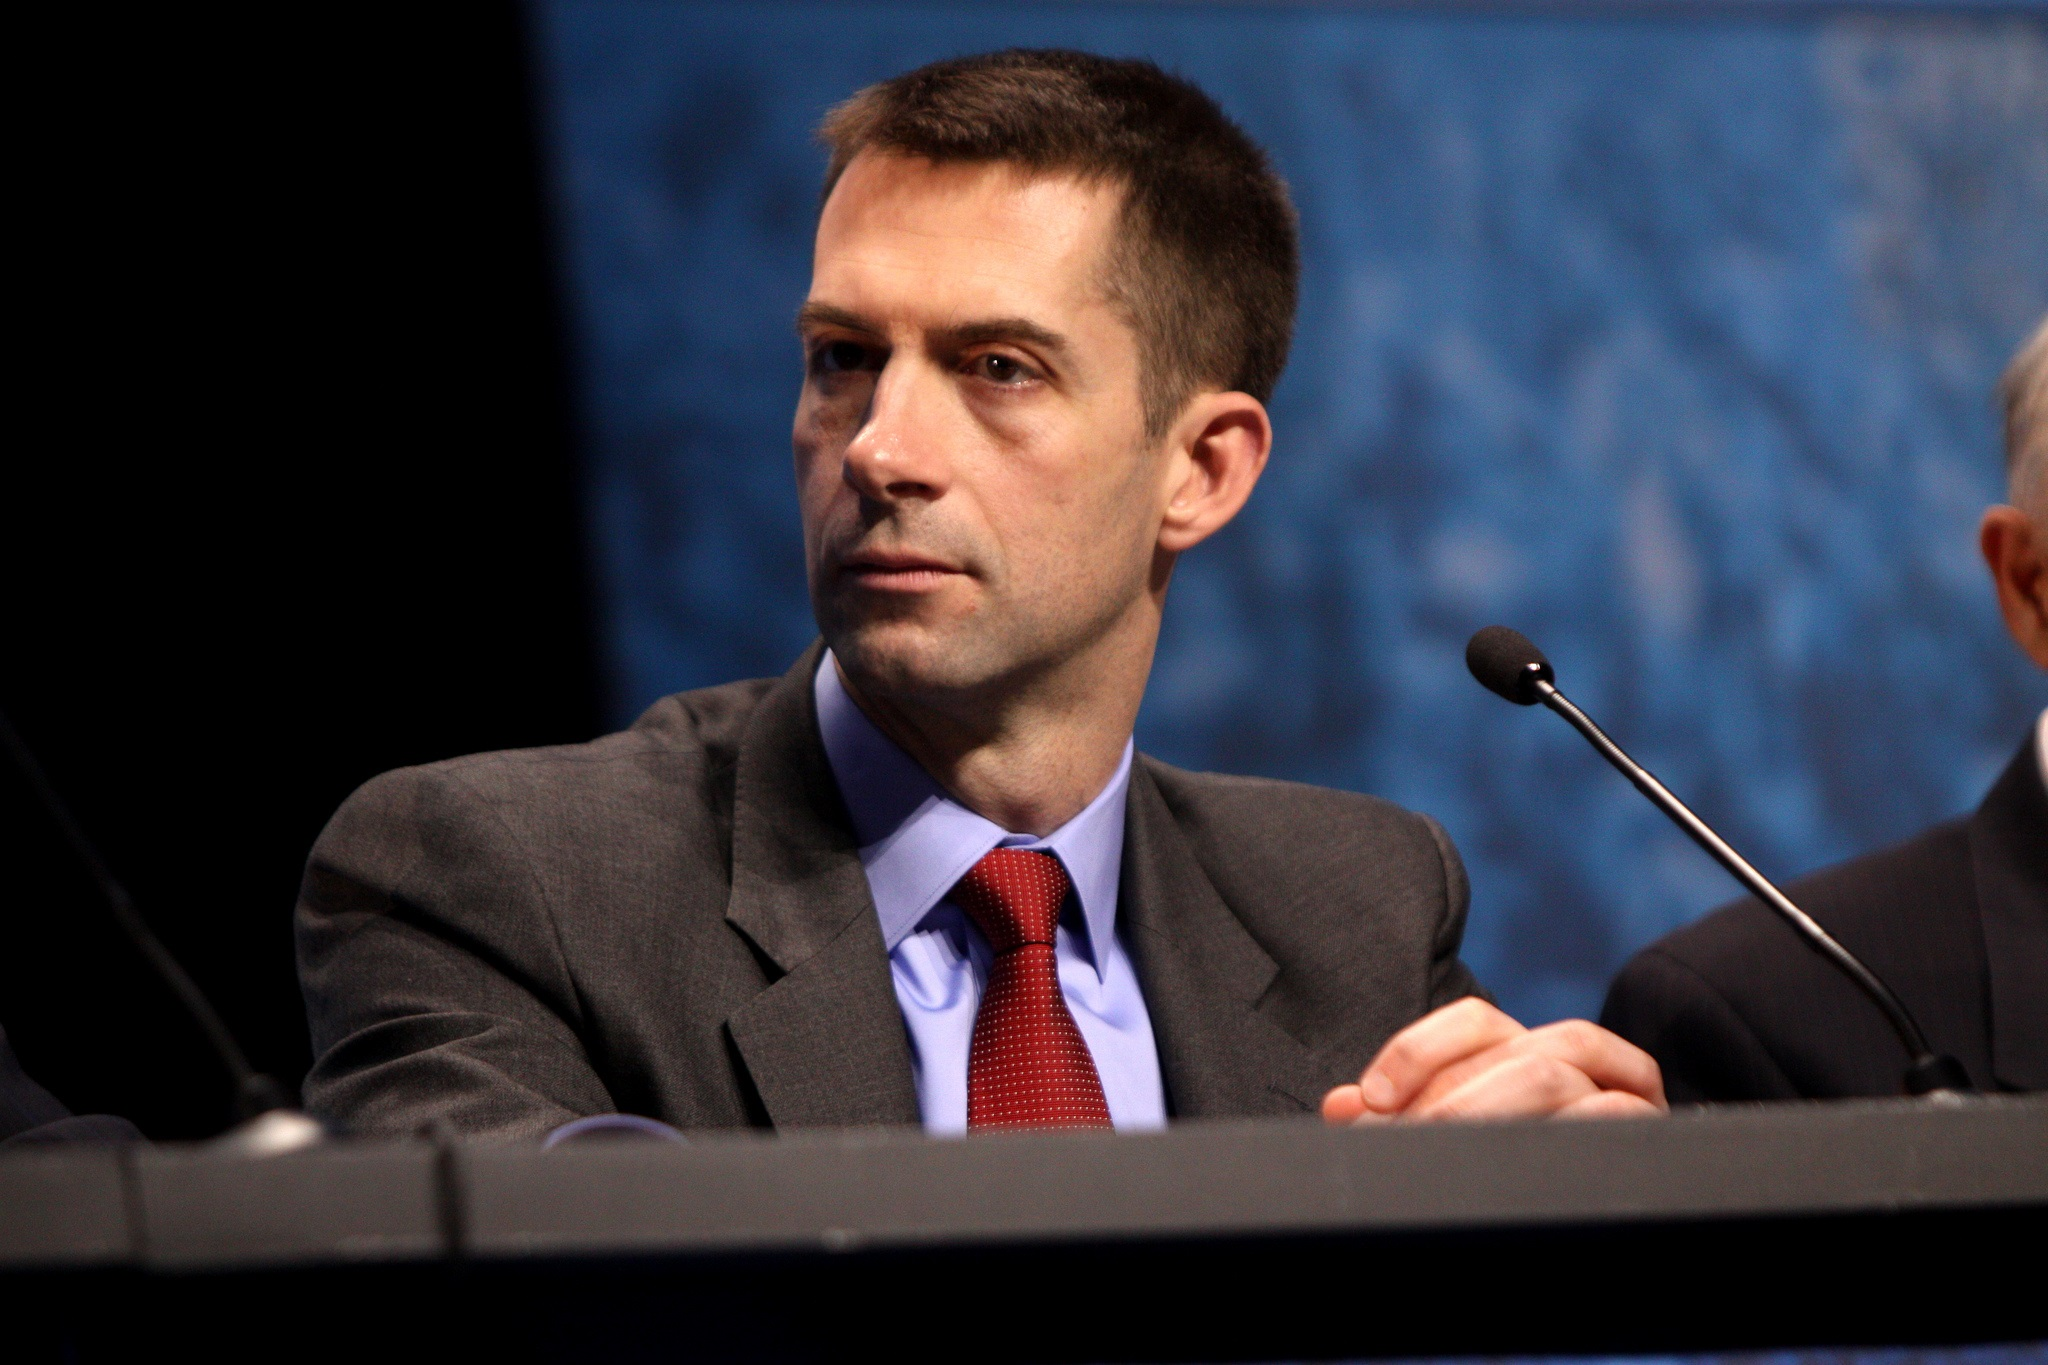 10 Things to Know About the GOP's 'Iran Letter' Sponsor